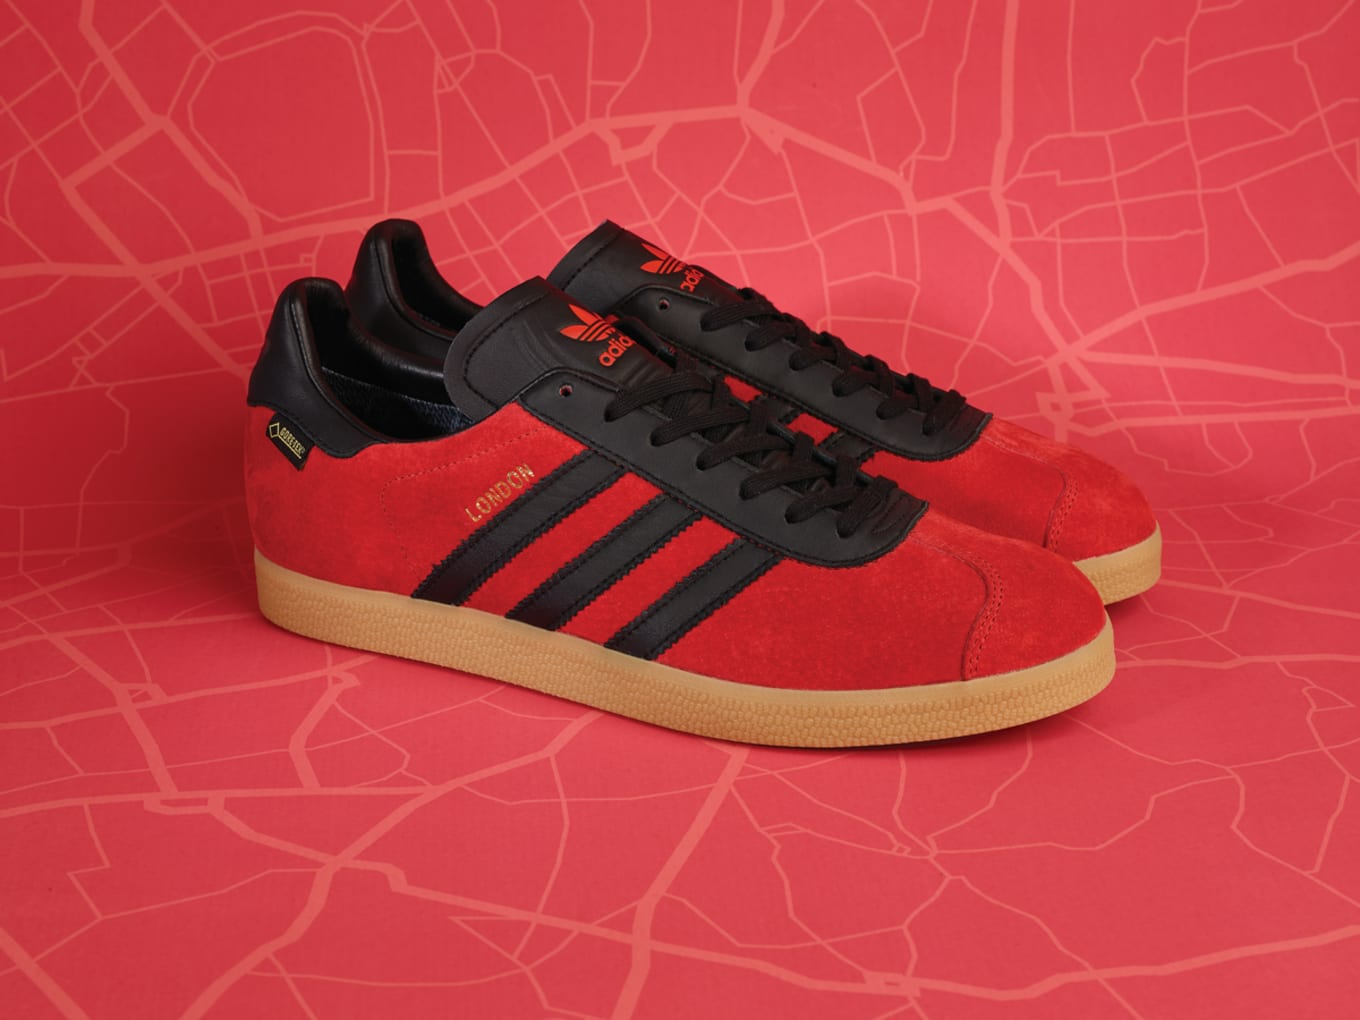 brand new 2b07b 9f6f3 The Gazelle GTX gets donned in red suede and black leather.